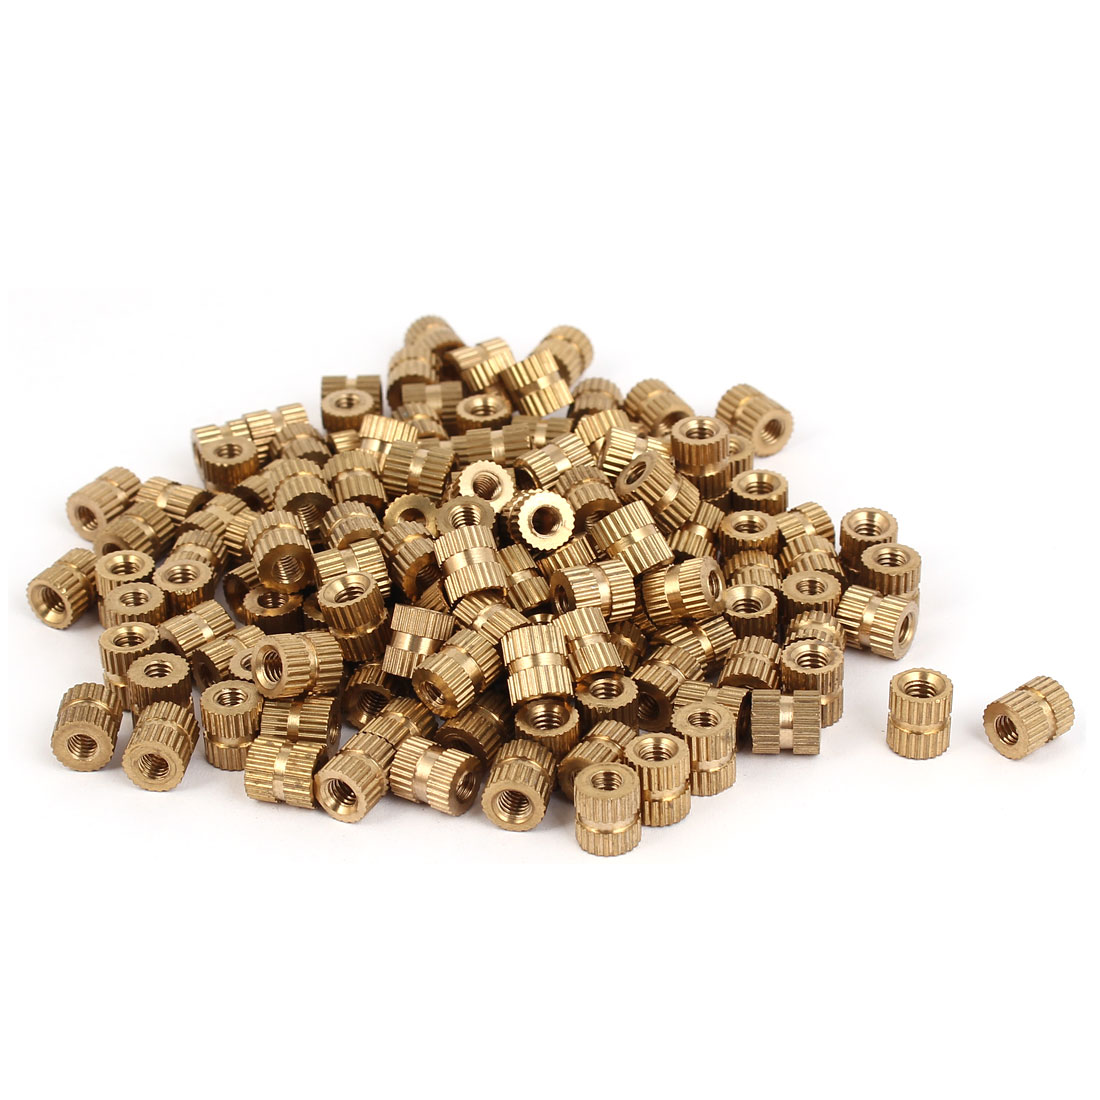 M4 x 8mm Brass Cylinder Injection Molding Knurled Insert Embedded Nuts 200PCS